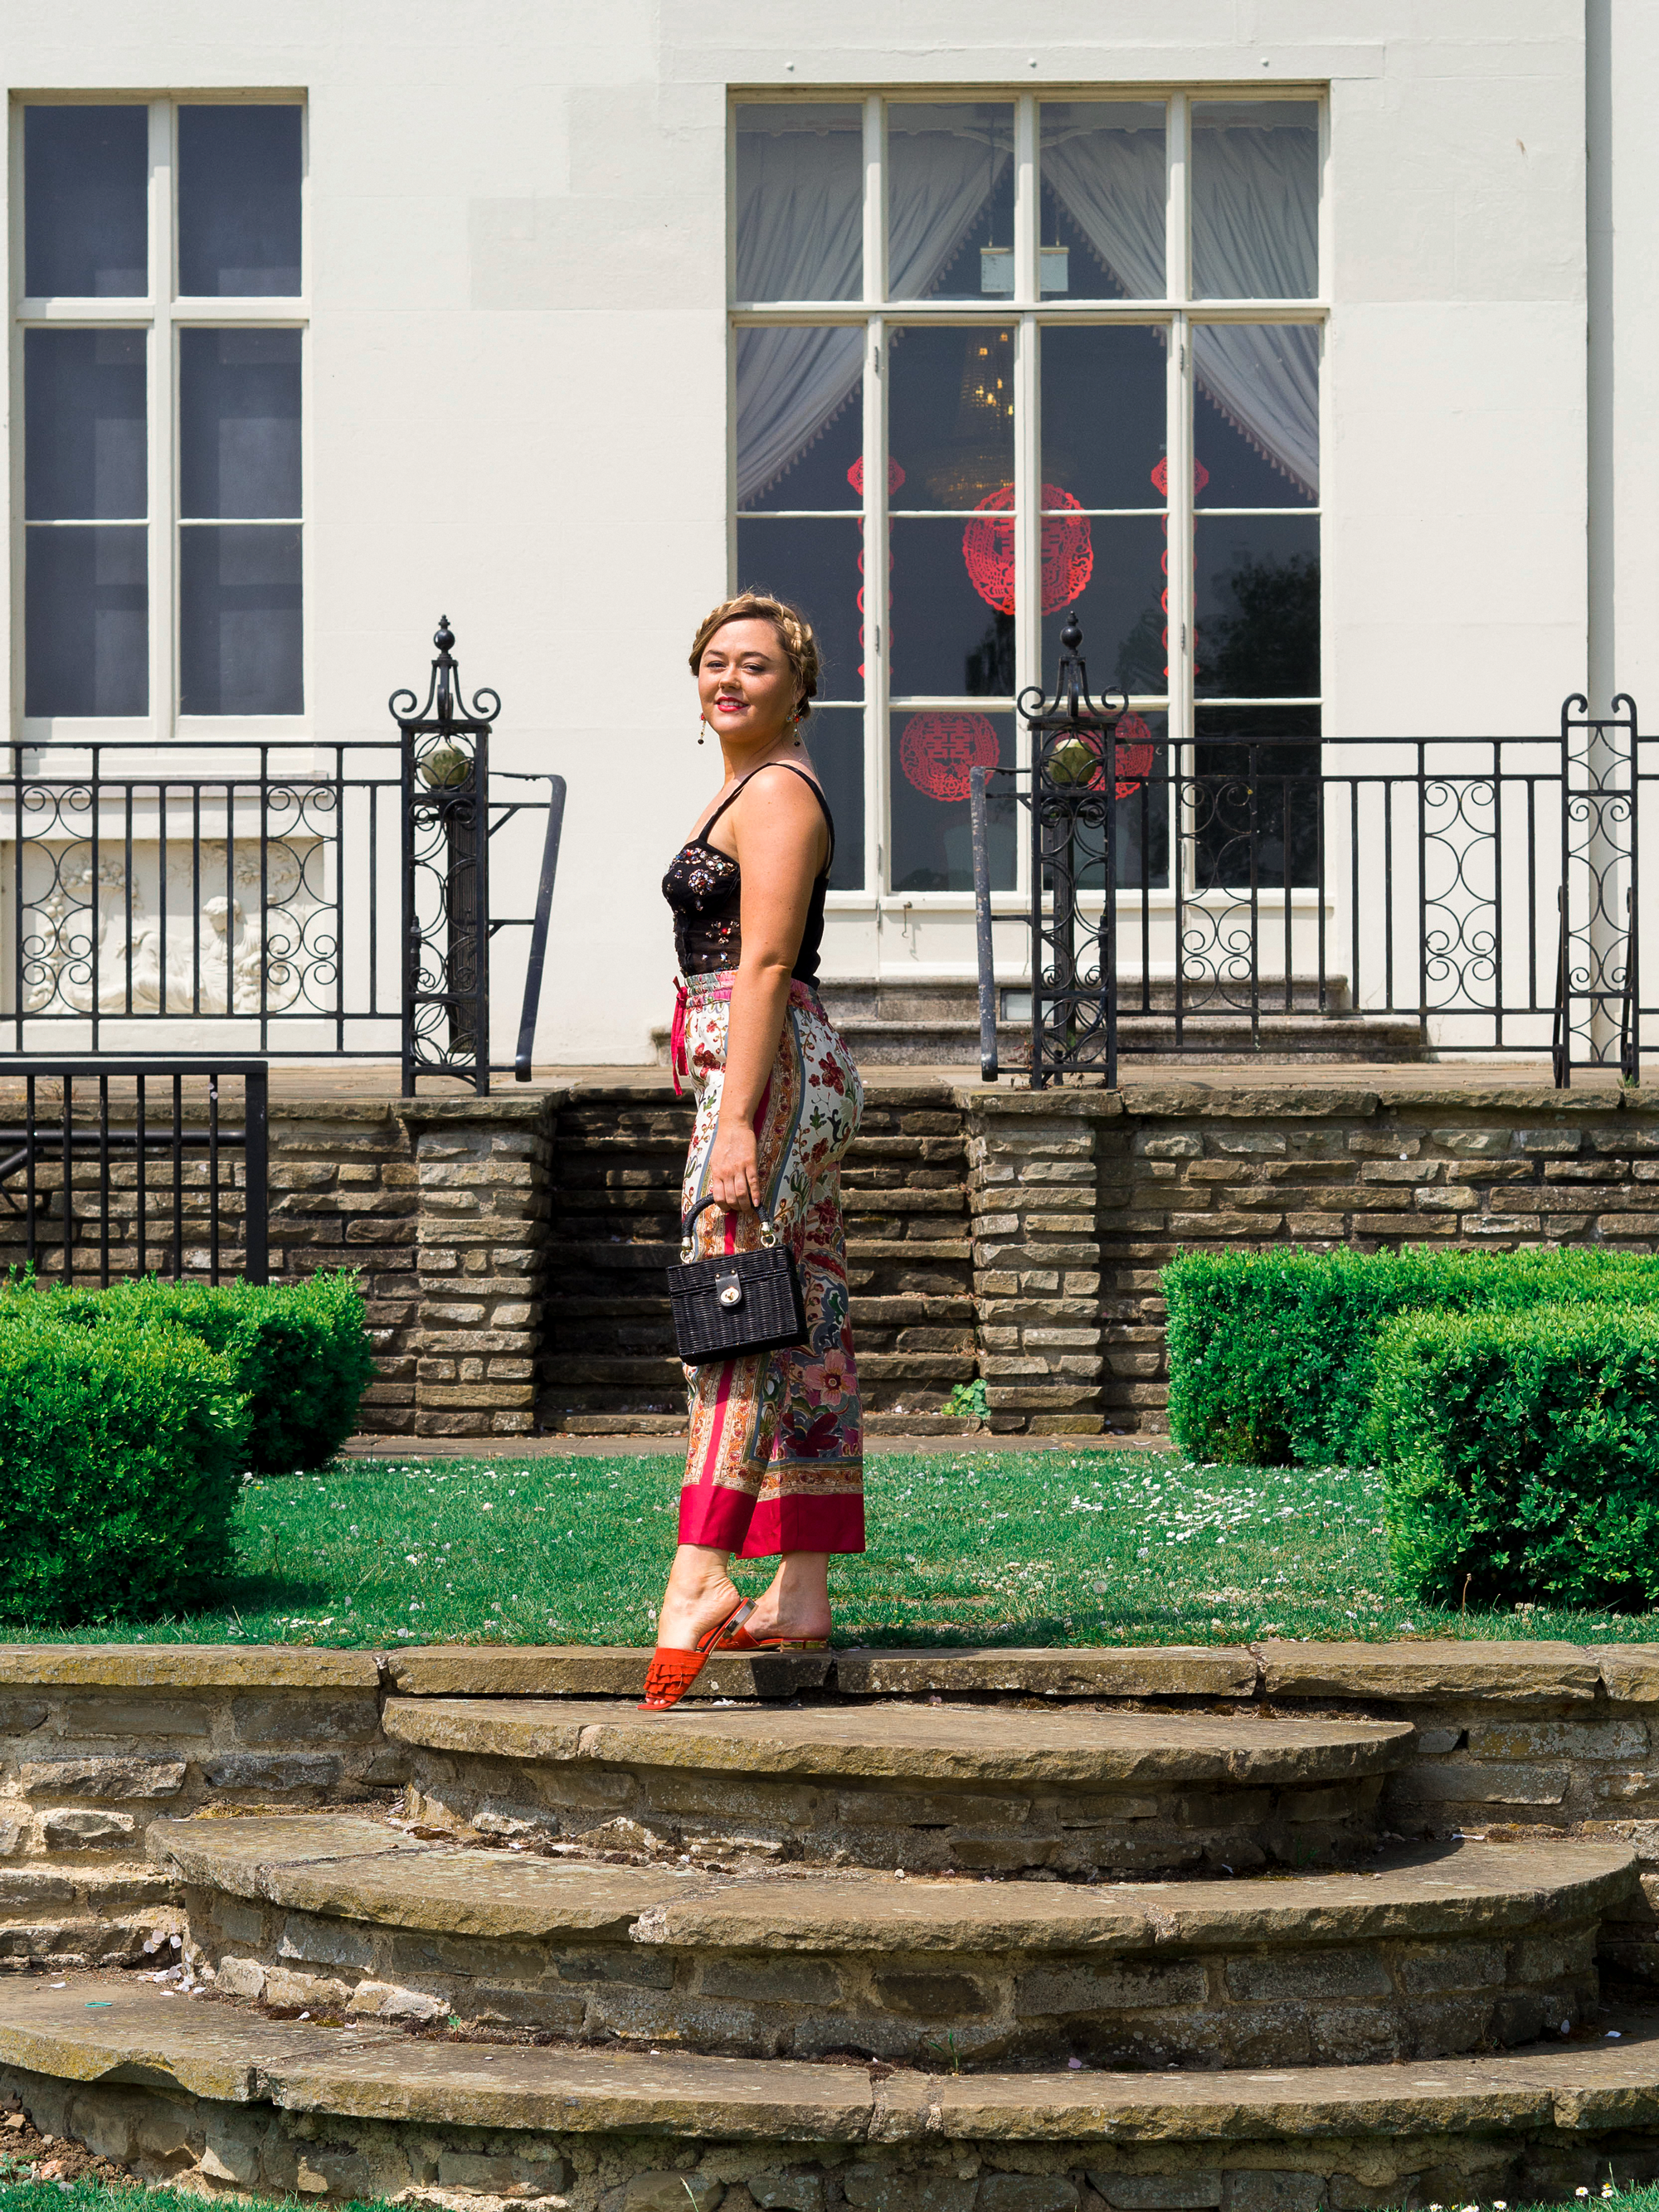 Hannah wears an embellished and jewelled black bustier with straps and baroque patterned red silky pyjama style trousers/pants. Shoes are red mules and she holds a black weaved wicker box bag outside a old white Manor House.